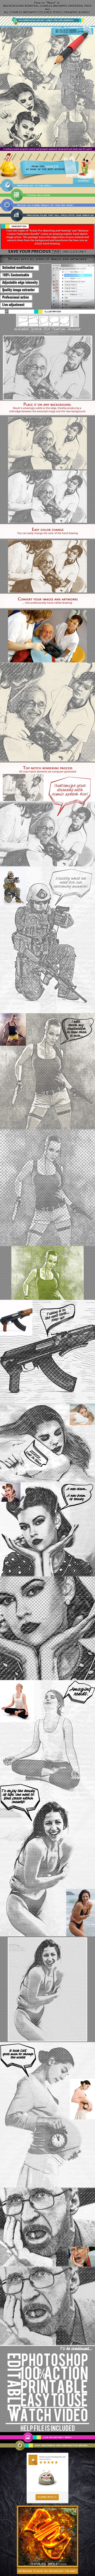 Pure Art Hand Drawing 139 – Crosshatch Super Kit 2 - Photo Effects Actions